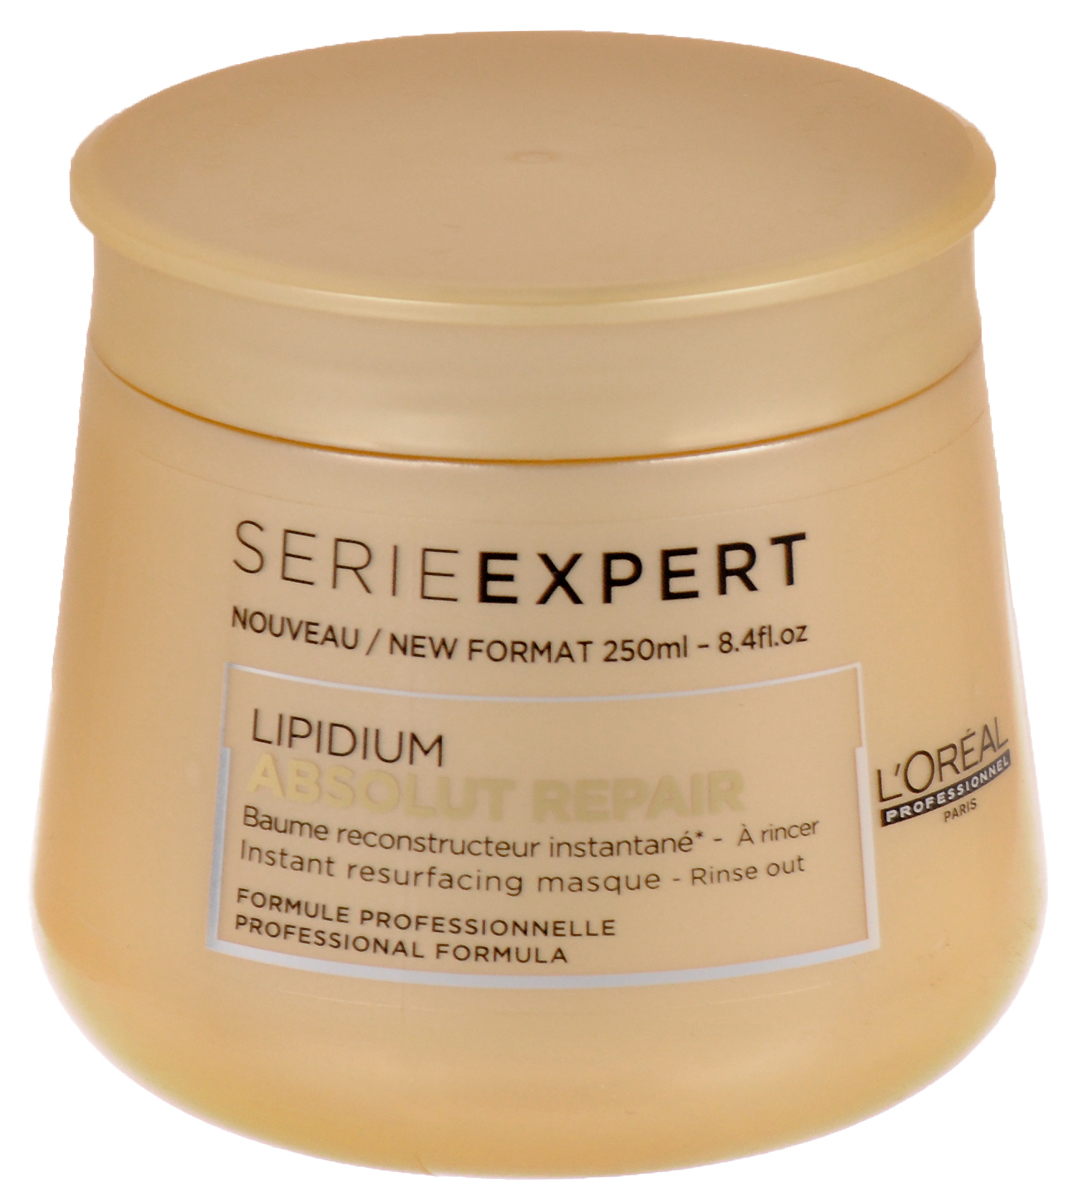 L'Oreal Professionnel Expert Absolut Repair Lipidium Mask - Маска для сильно поврежденных волос 250 мл крем l oreal professionnel expert absolute repair lipidium thermo reconstructing cream объем 125 мл